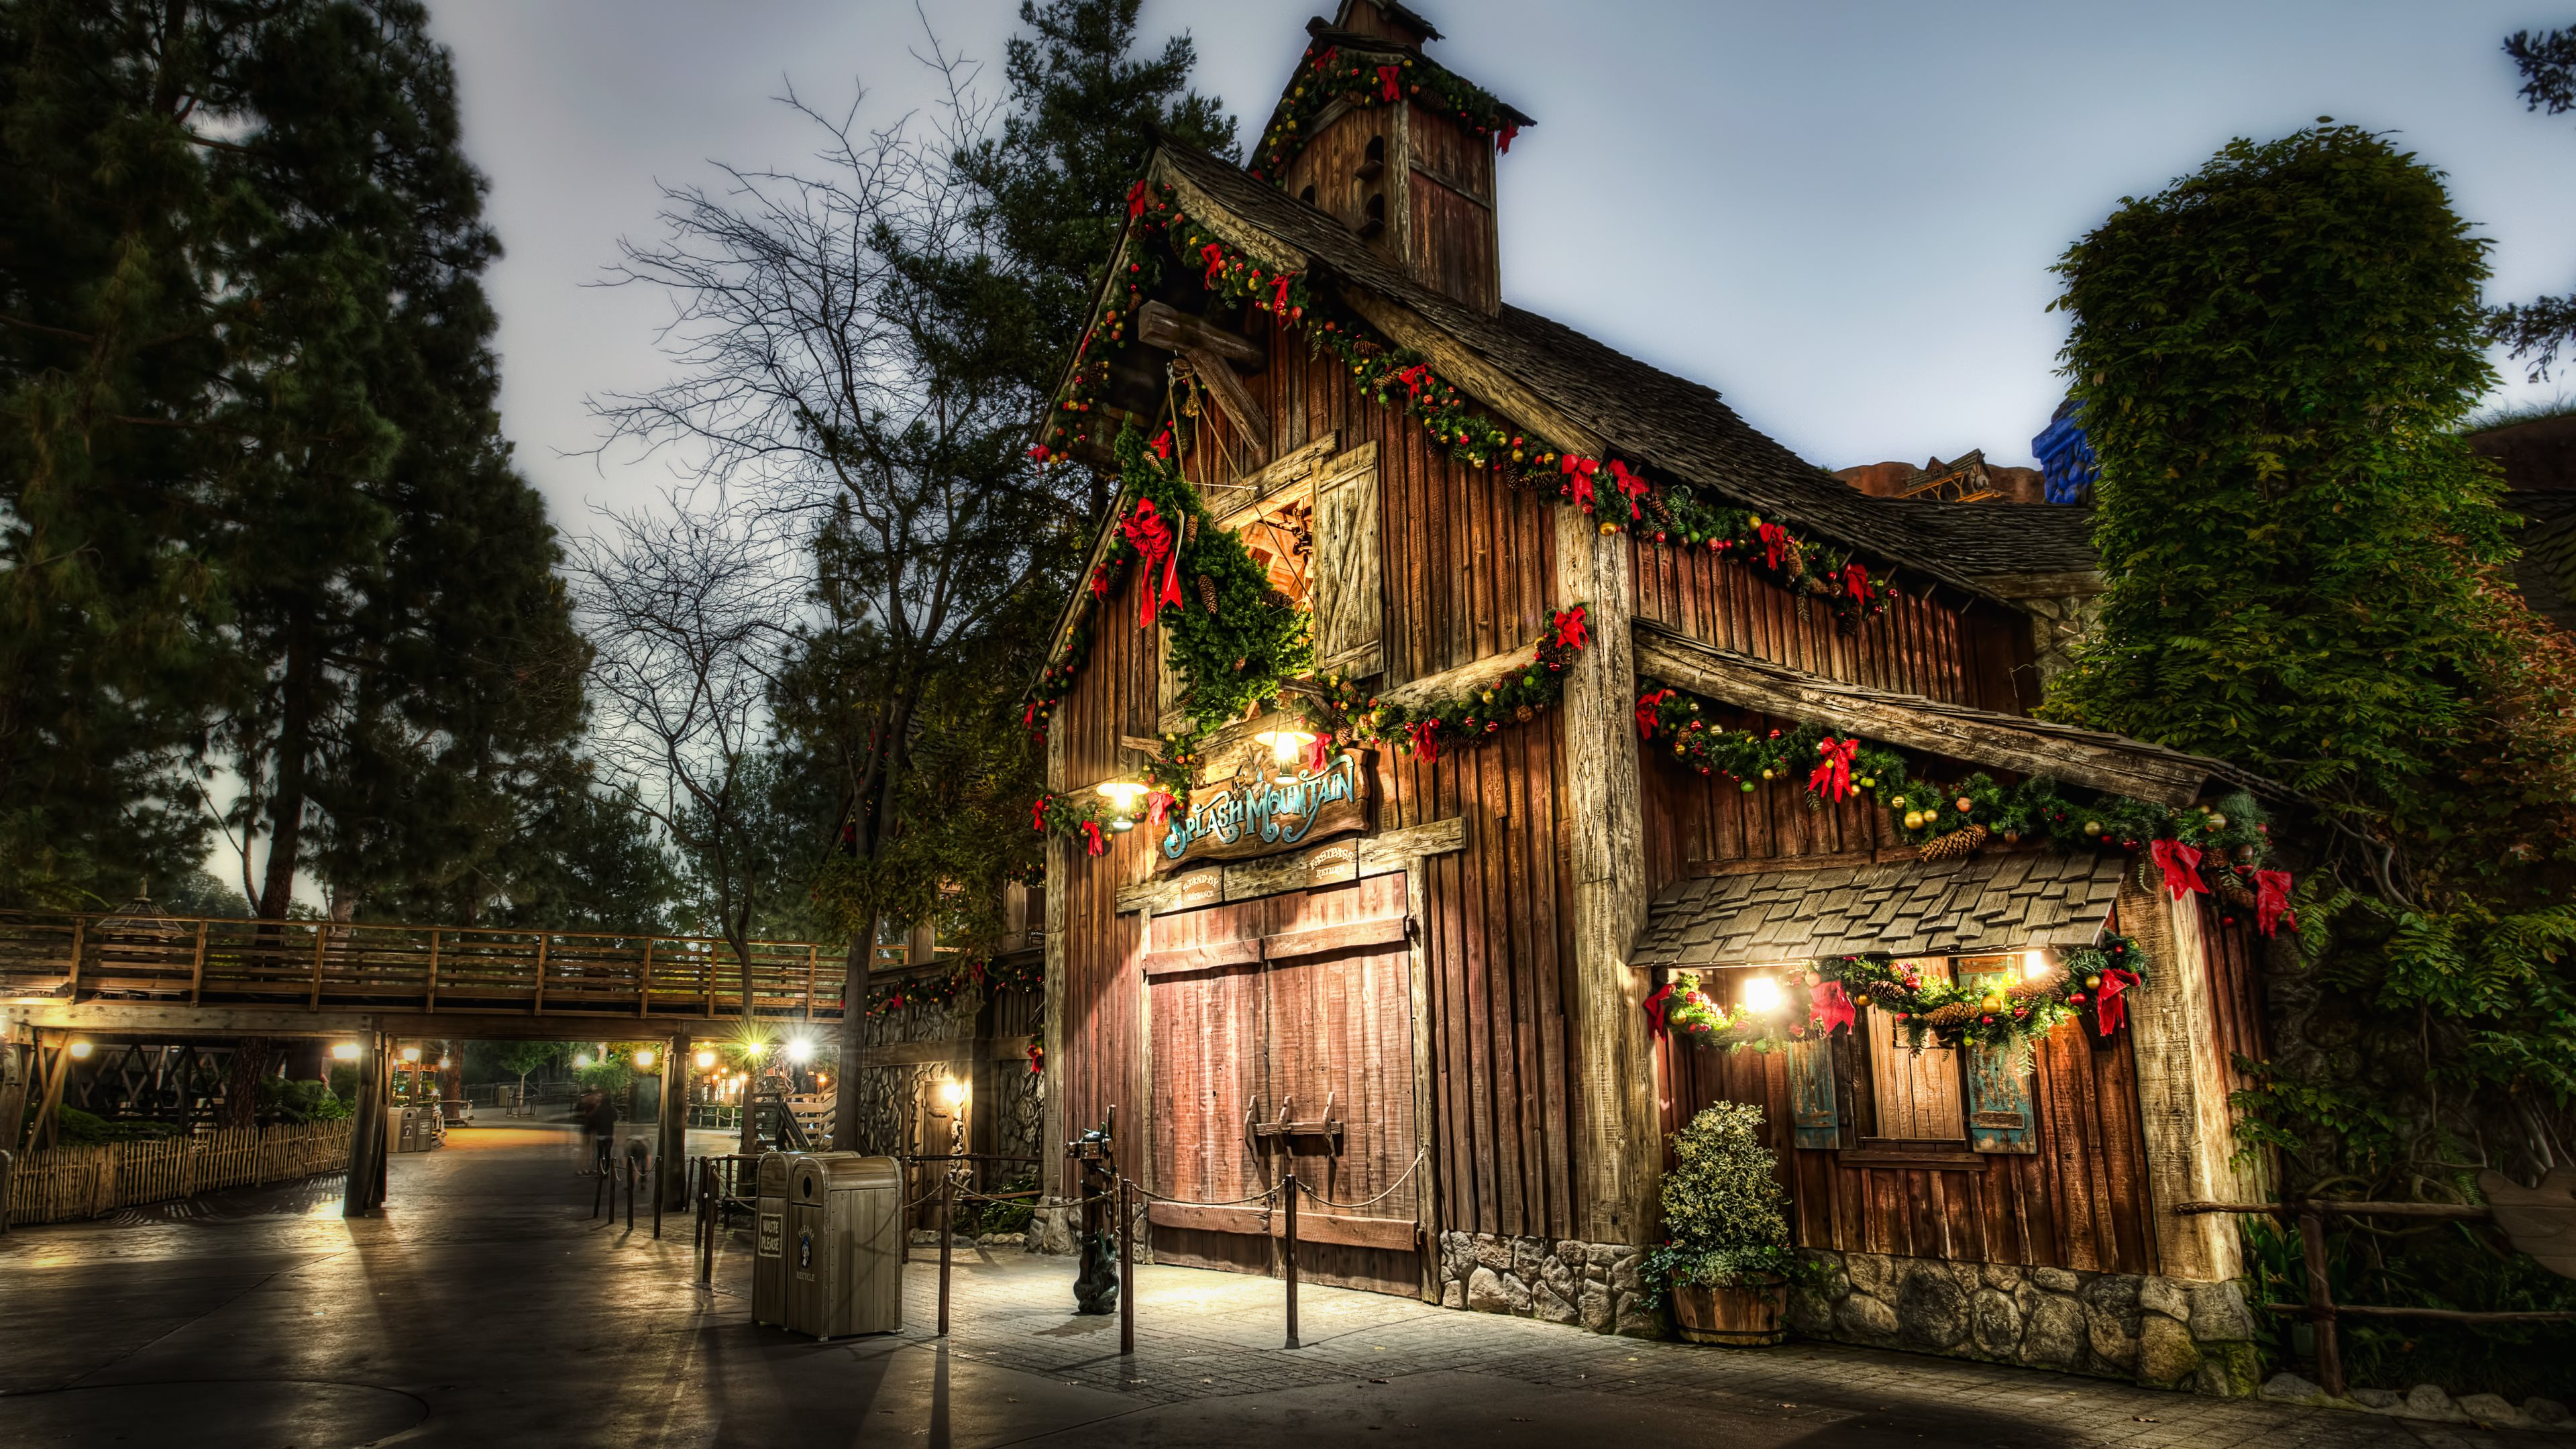 4k christmas wallpaper,building,town,architecture,night,lighting